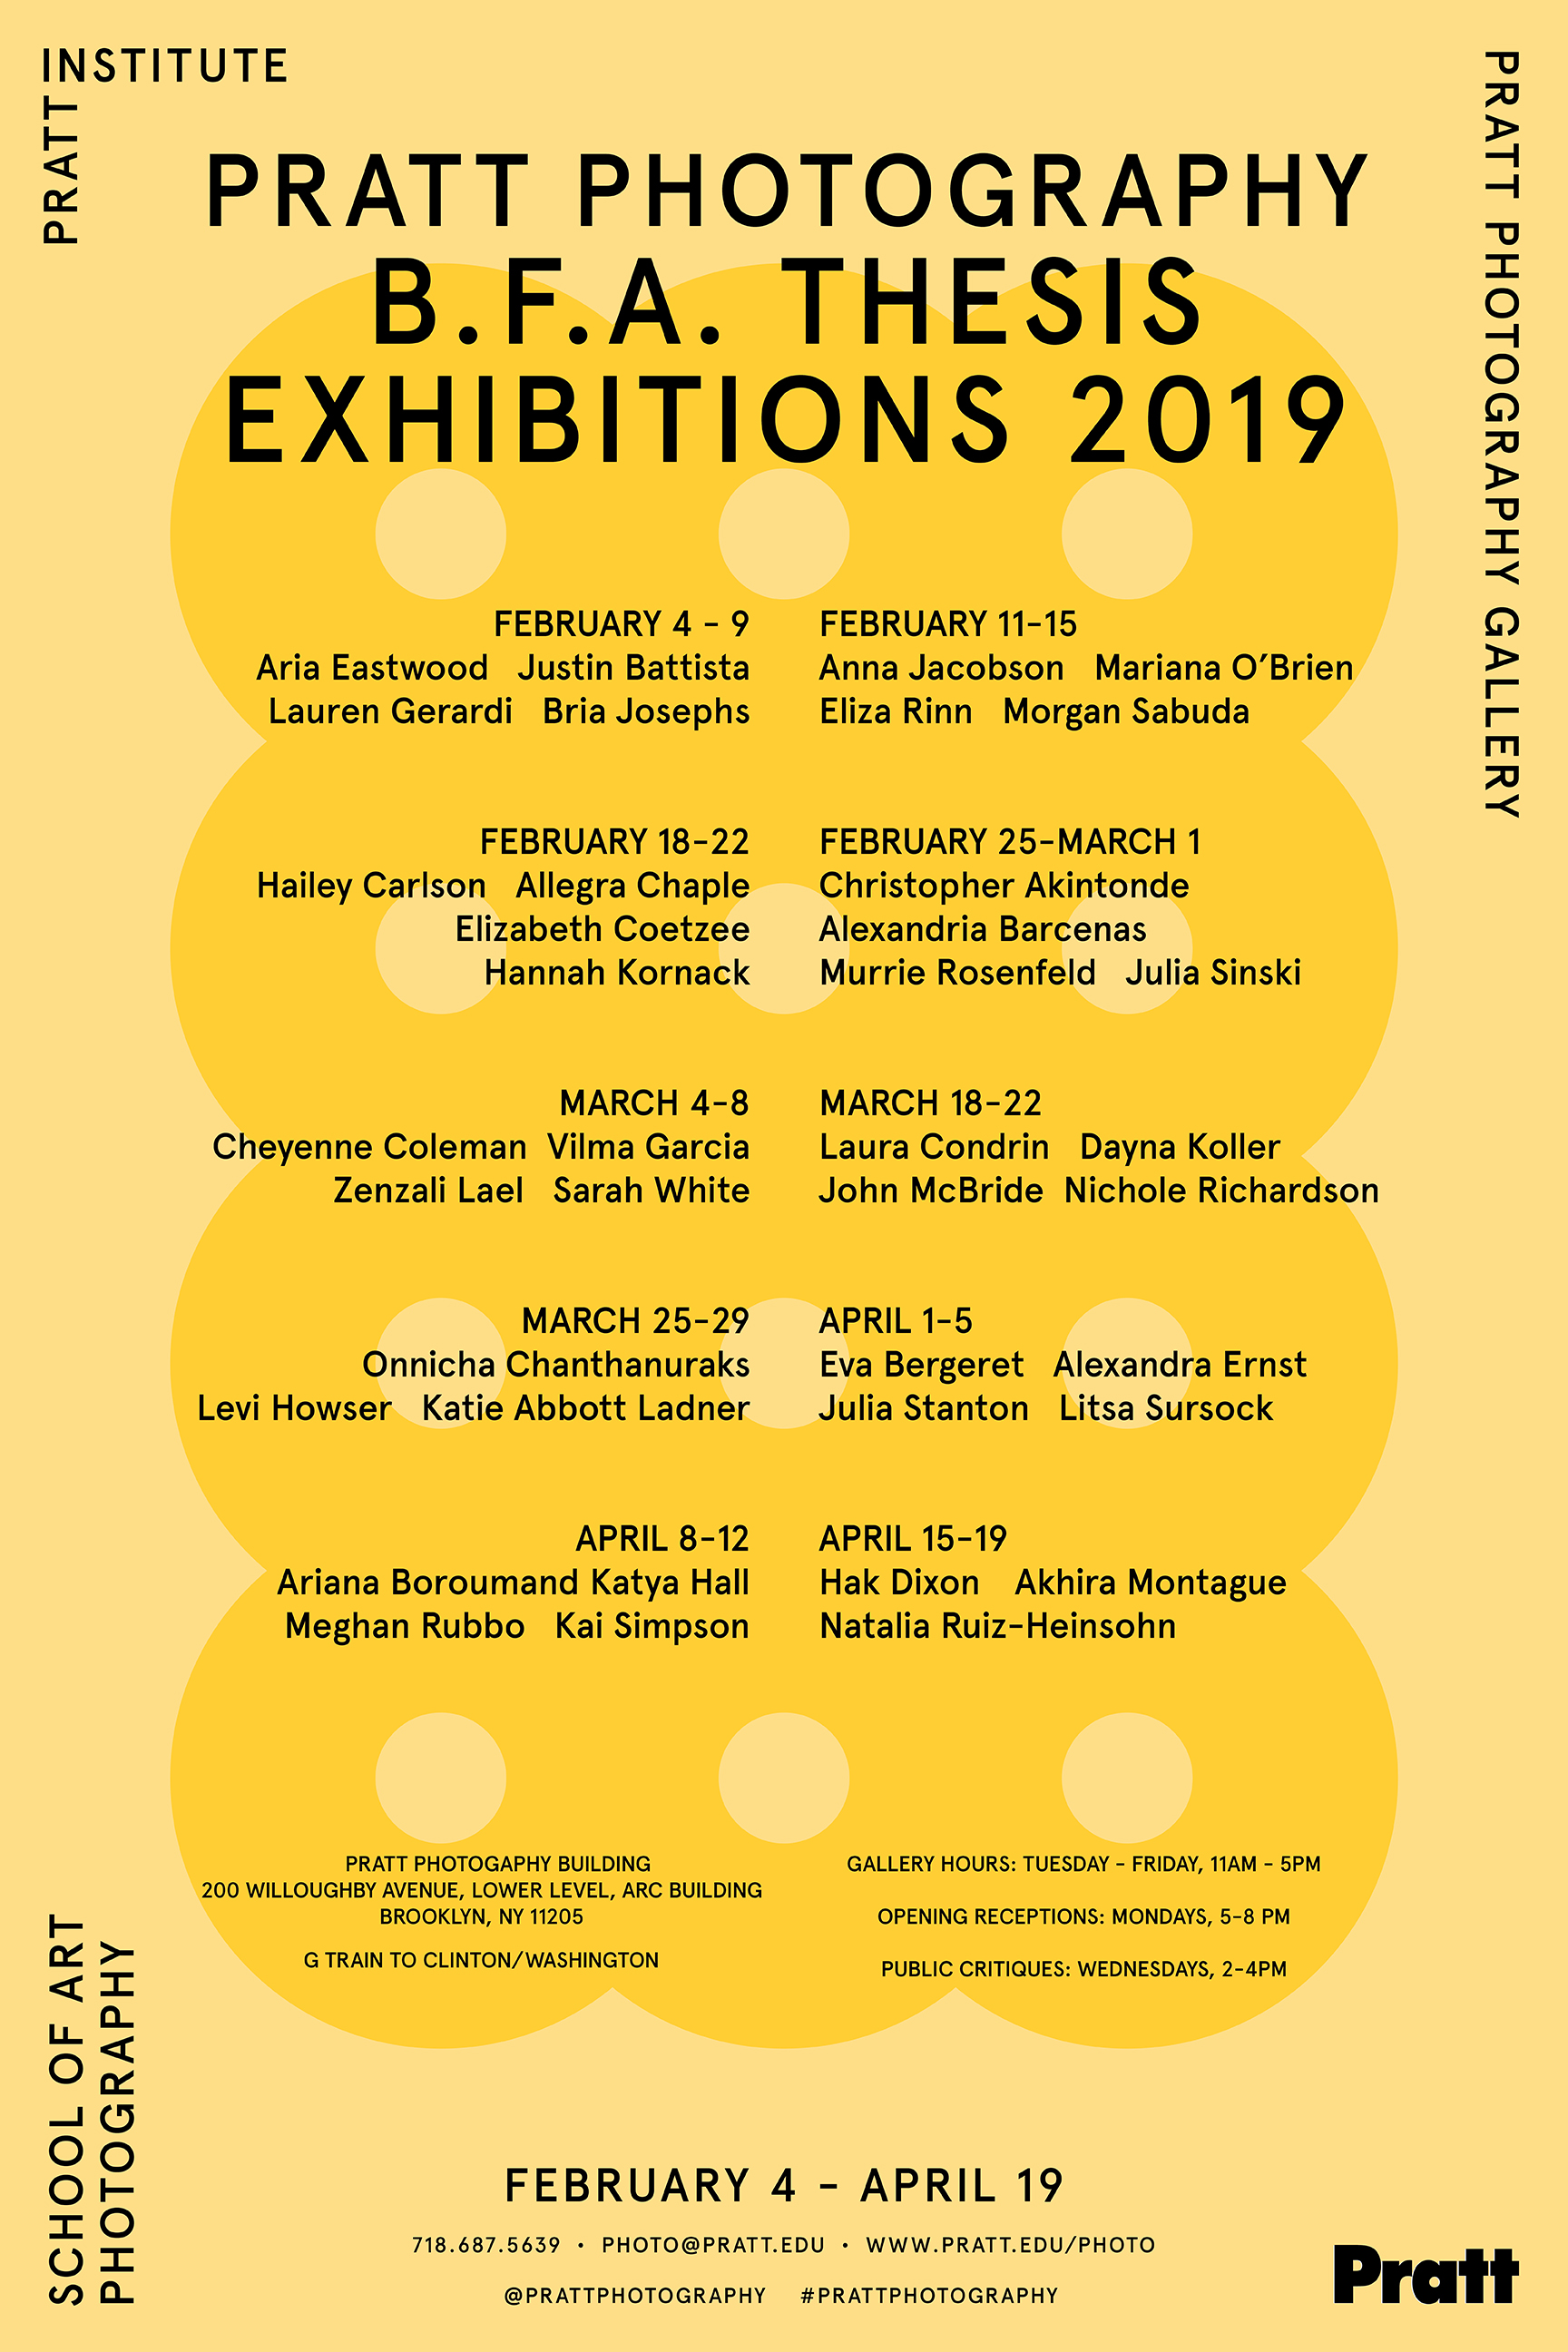 Spring 2019 thesis exhibitions